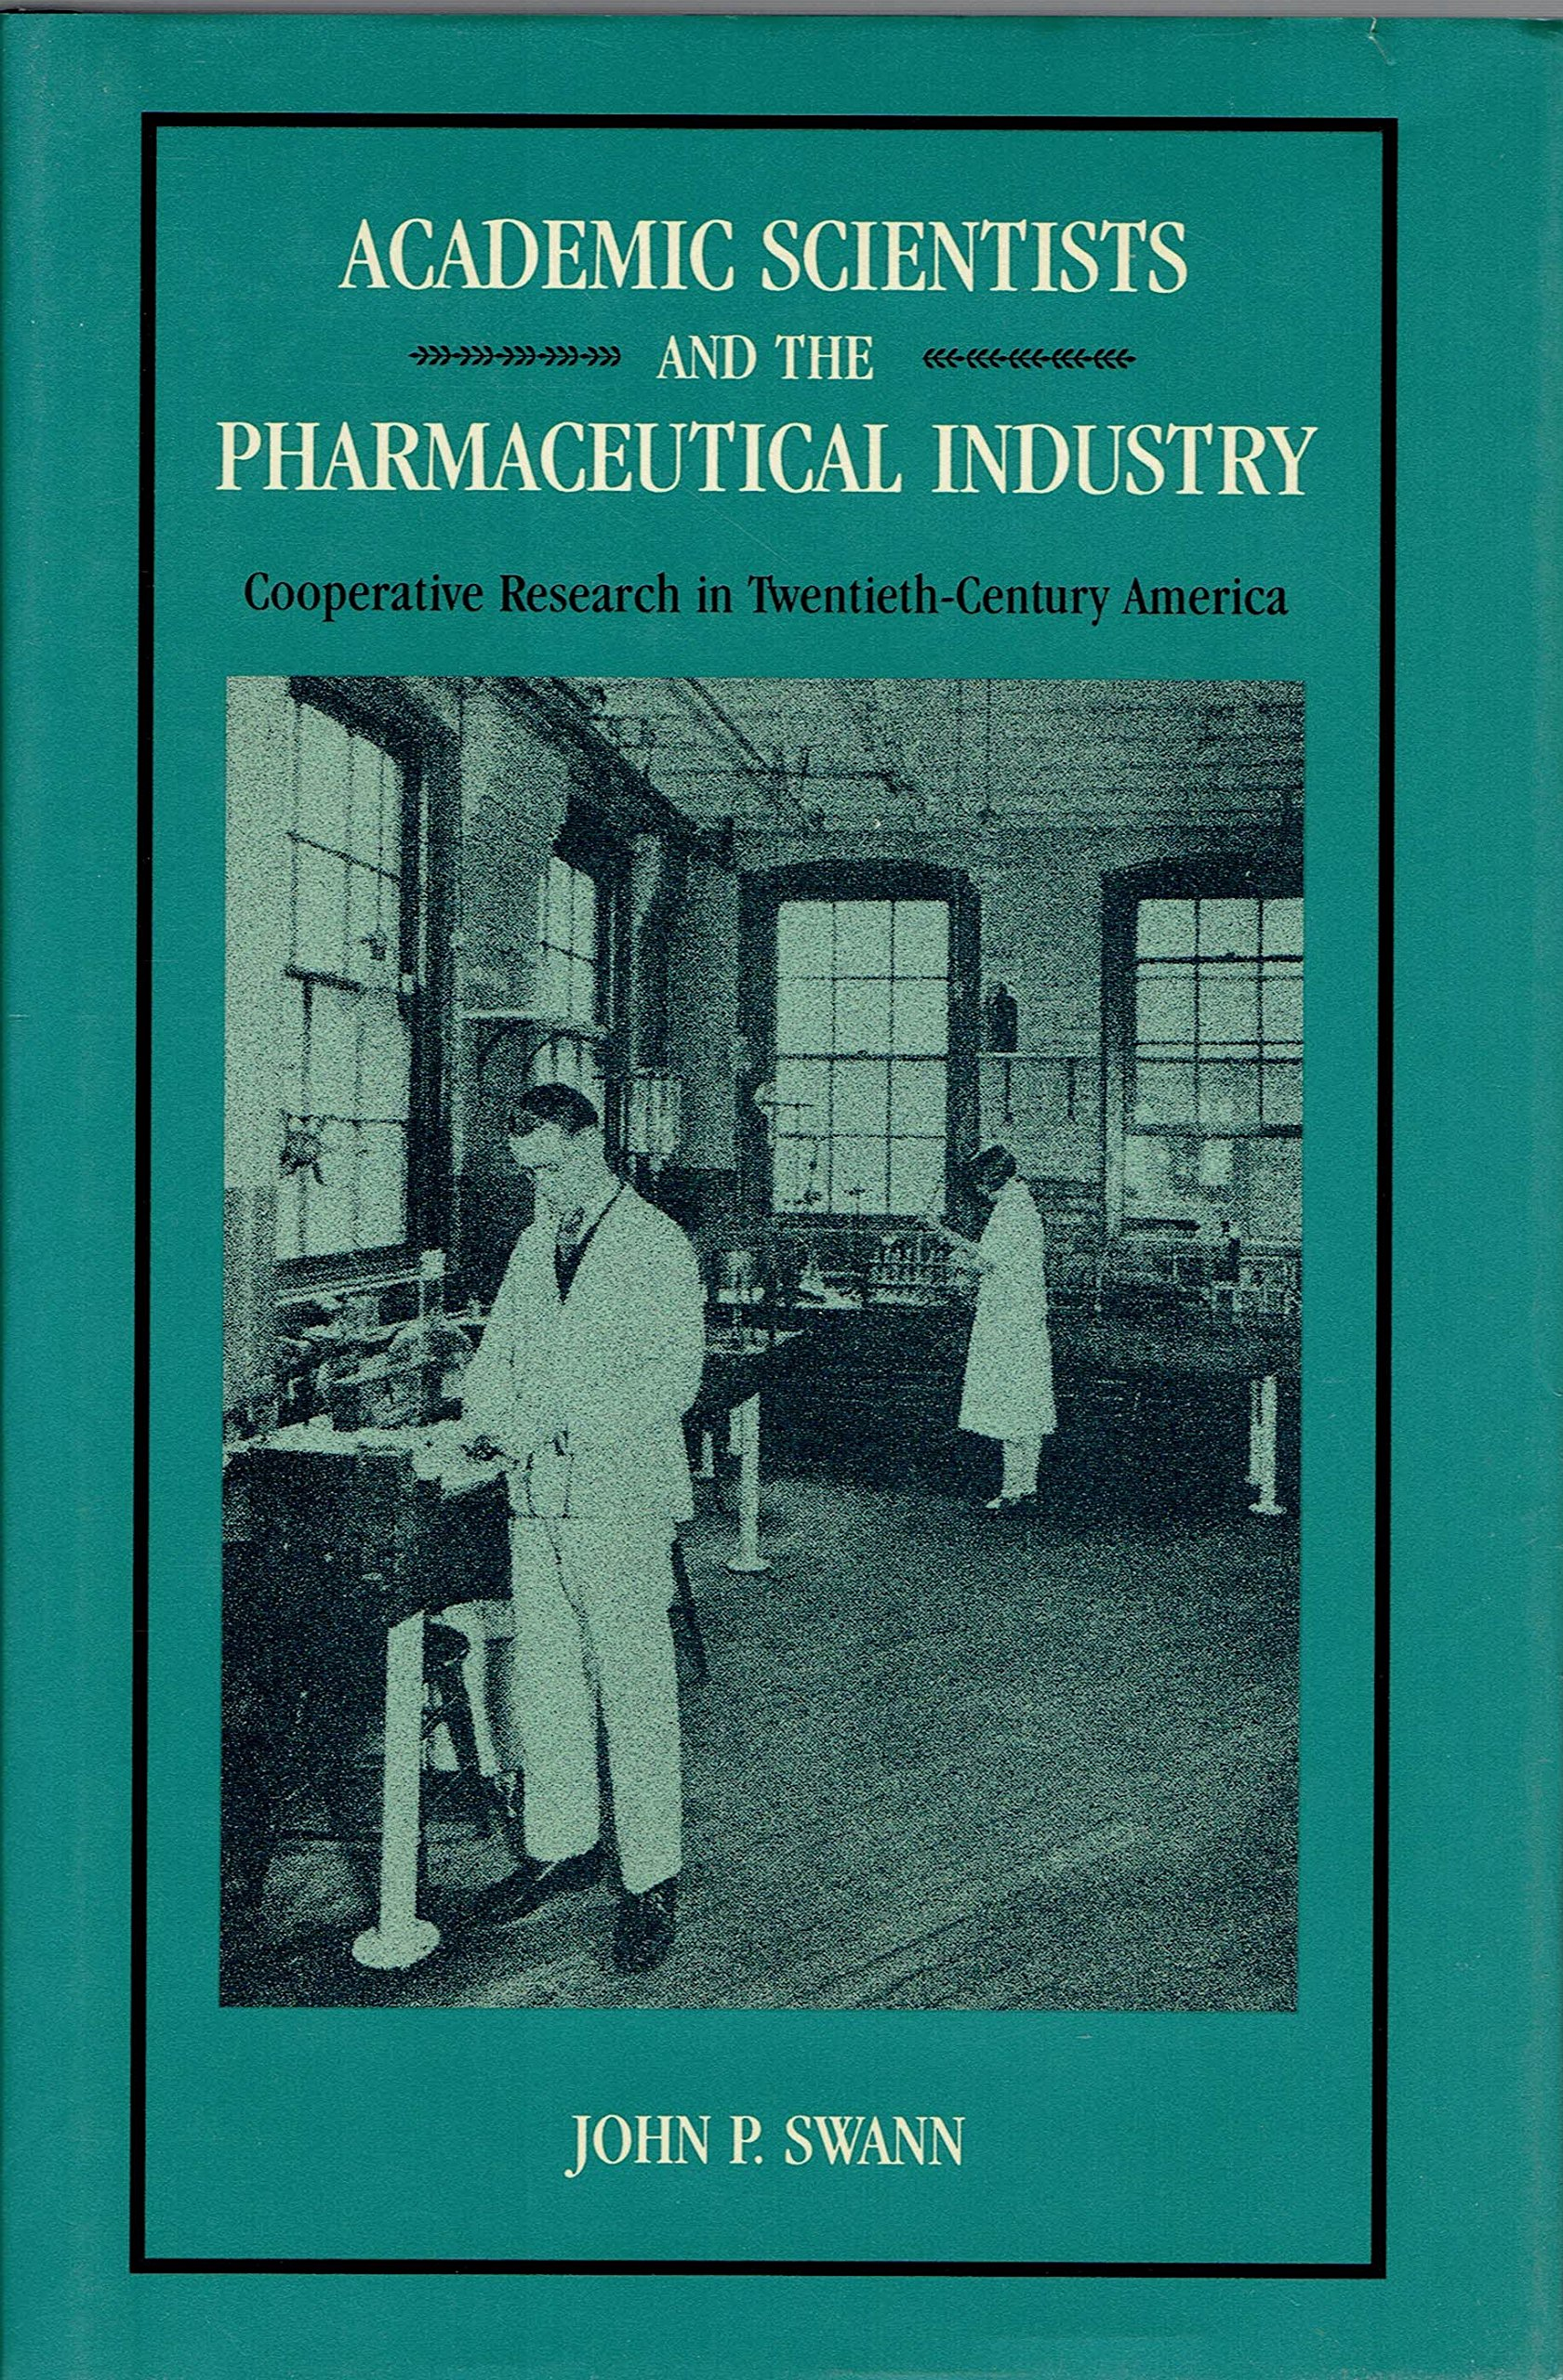 Academic Scientists and the Pharmaceutical Industry: Cooperative Research in Twentieth-Century America